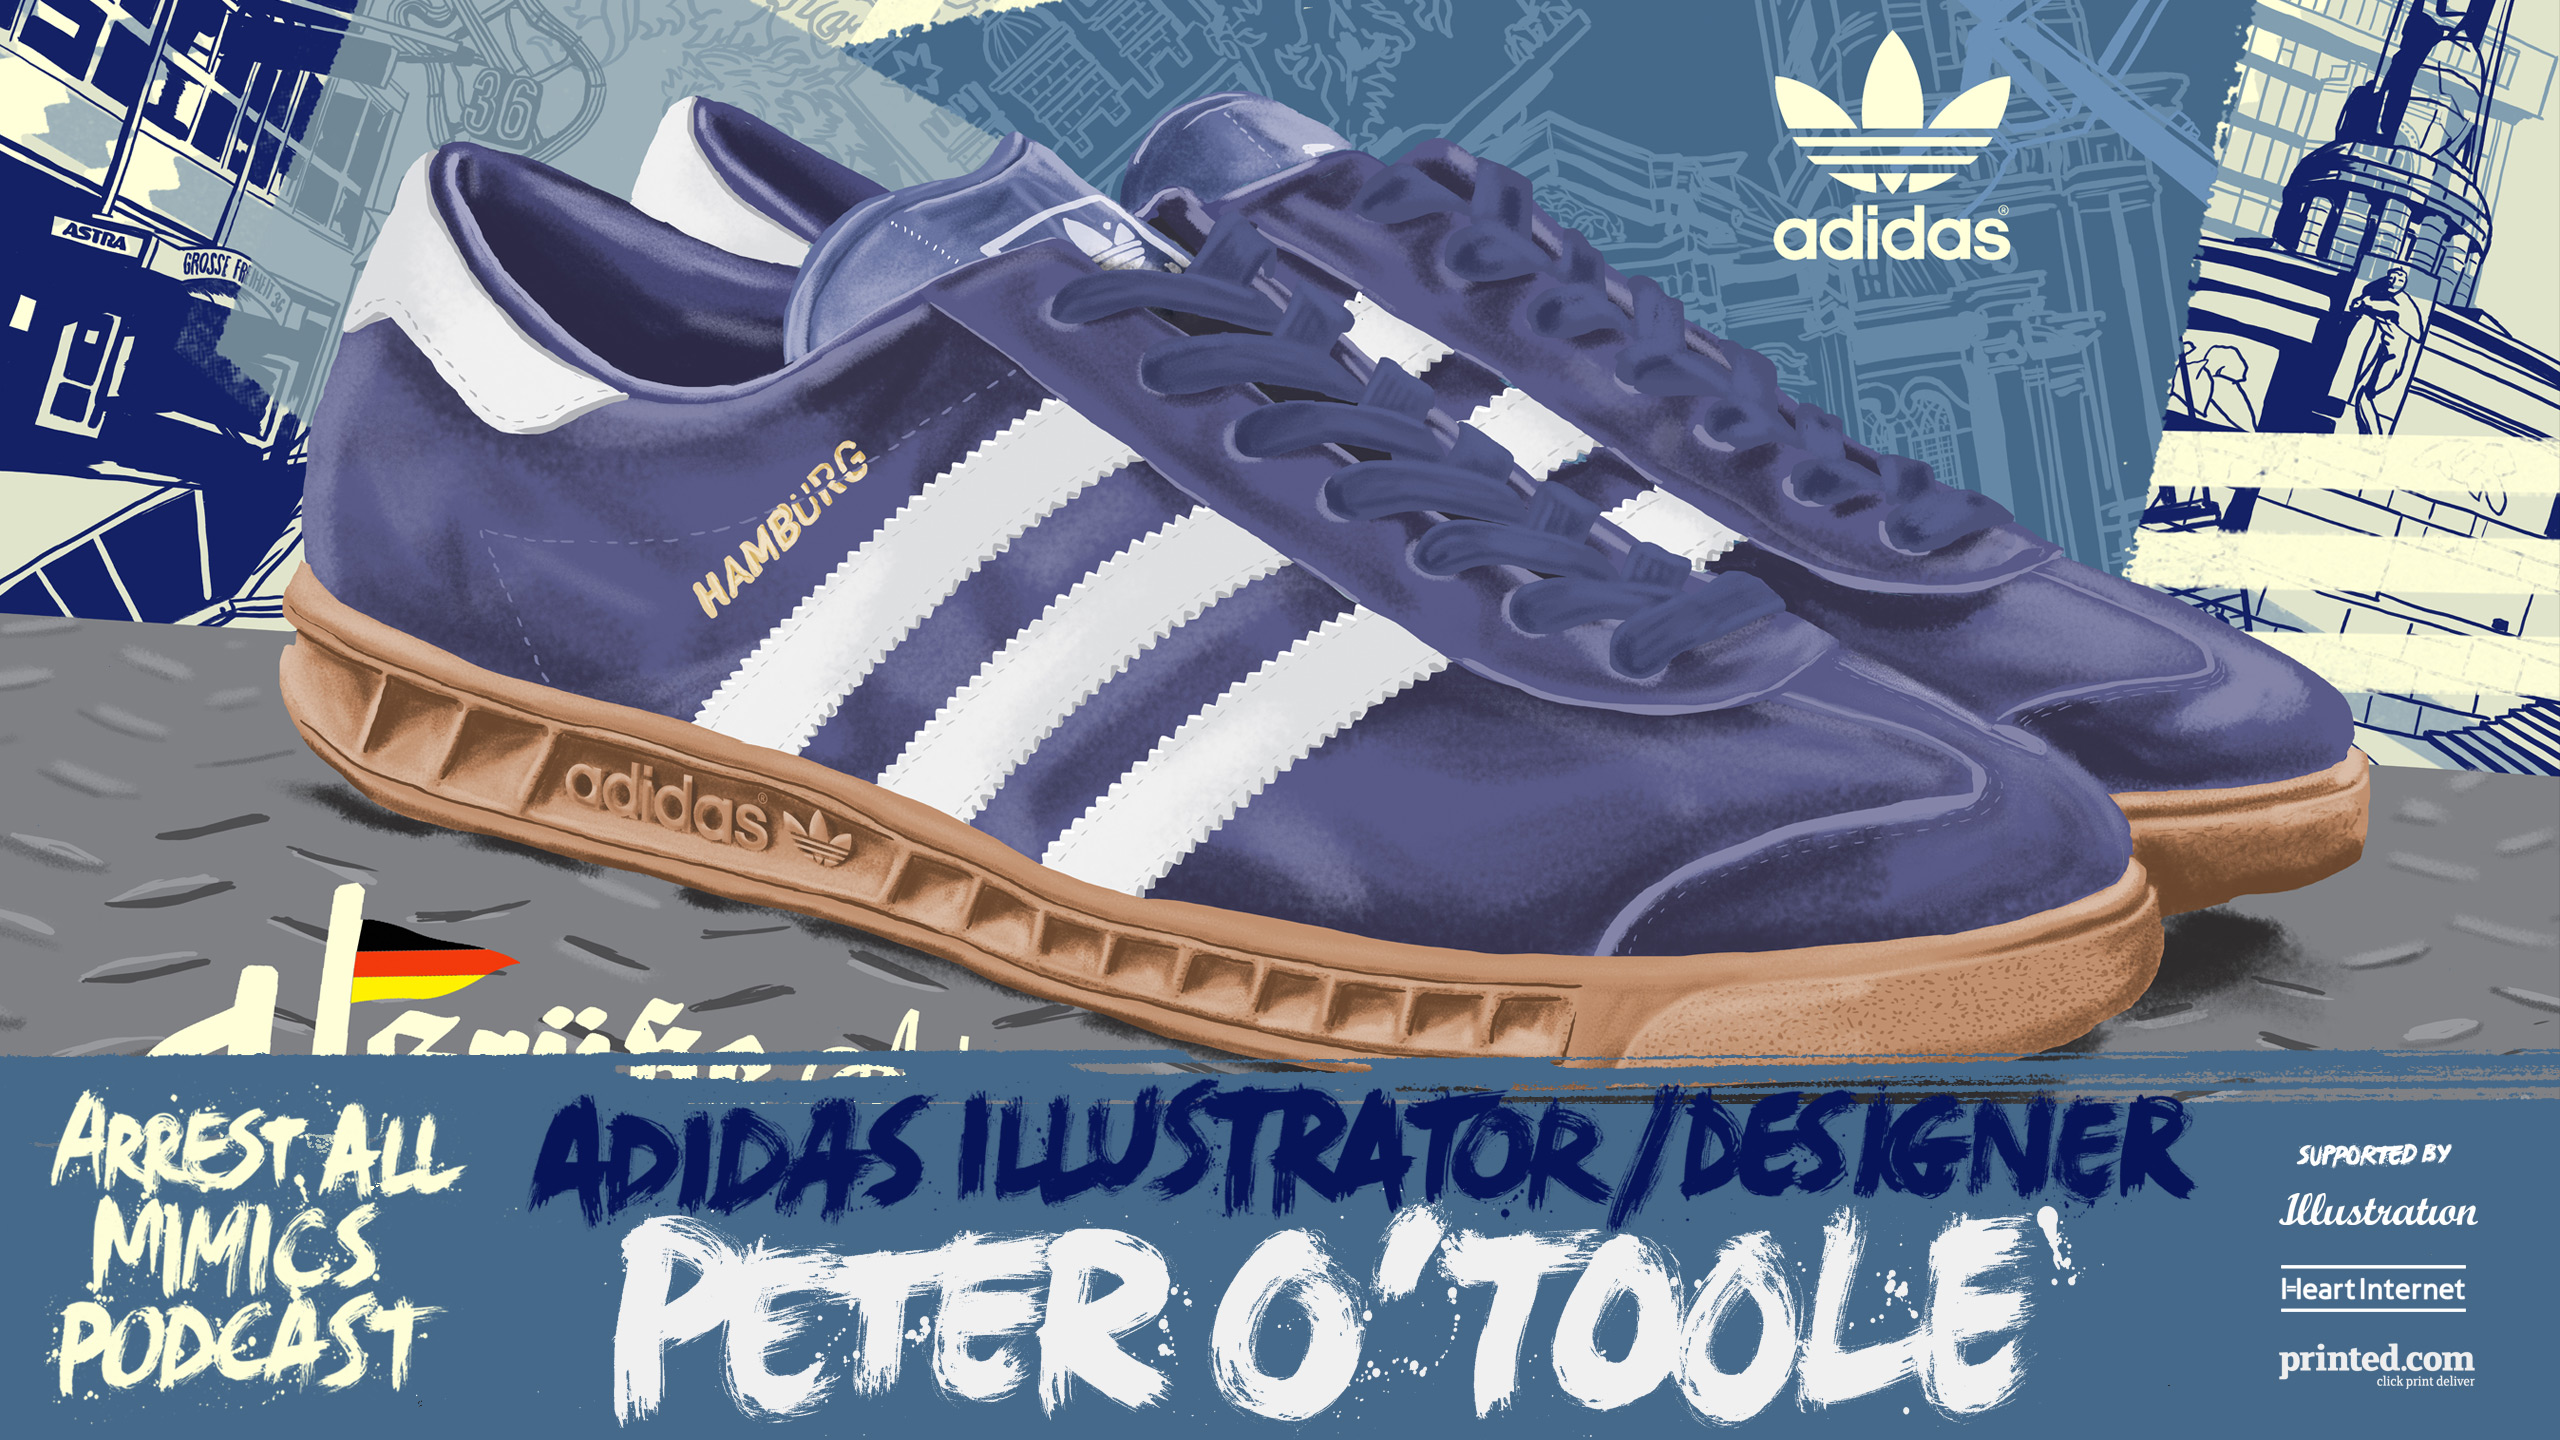 Arrest all mimics podcast Adidas illustrator peter o'toole hamburg trainers